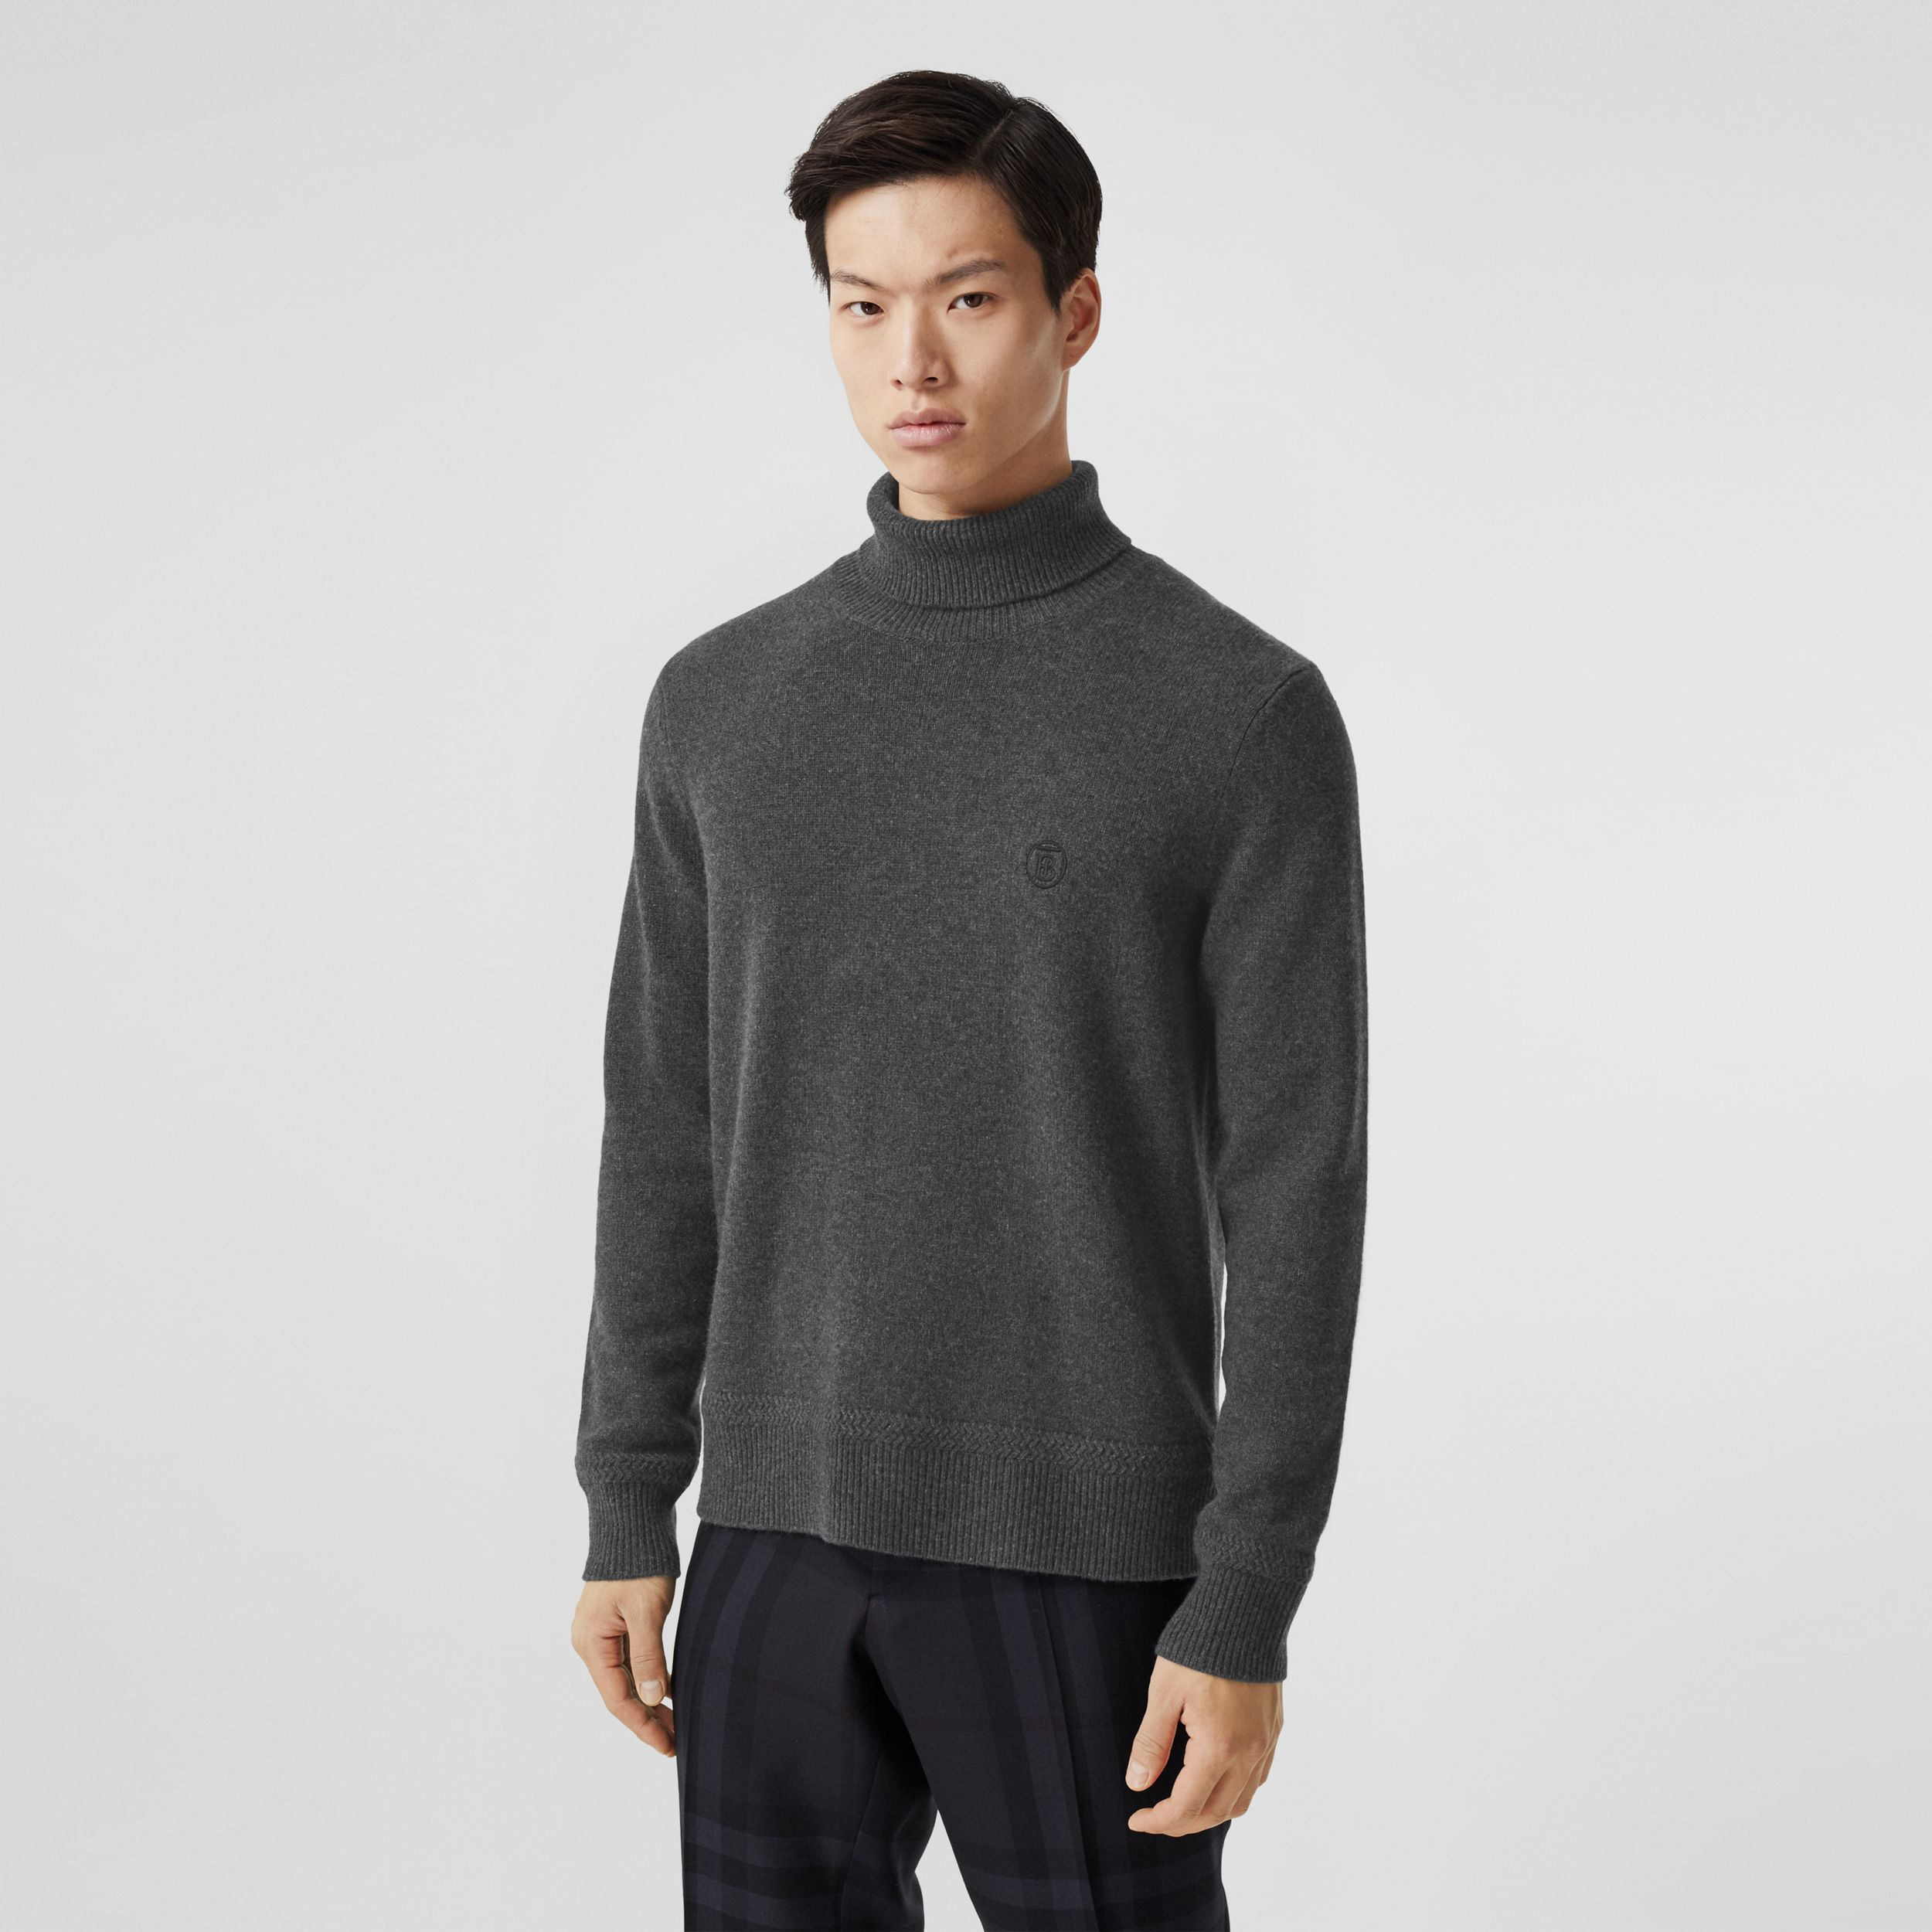 Monogram Motif Cashmere Roll-neck Sweater in Charcoal - Men | Burberry Australia - 1